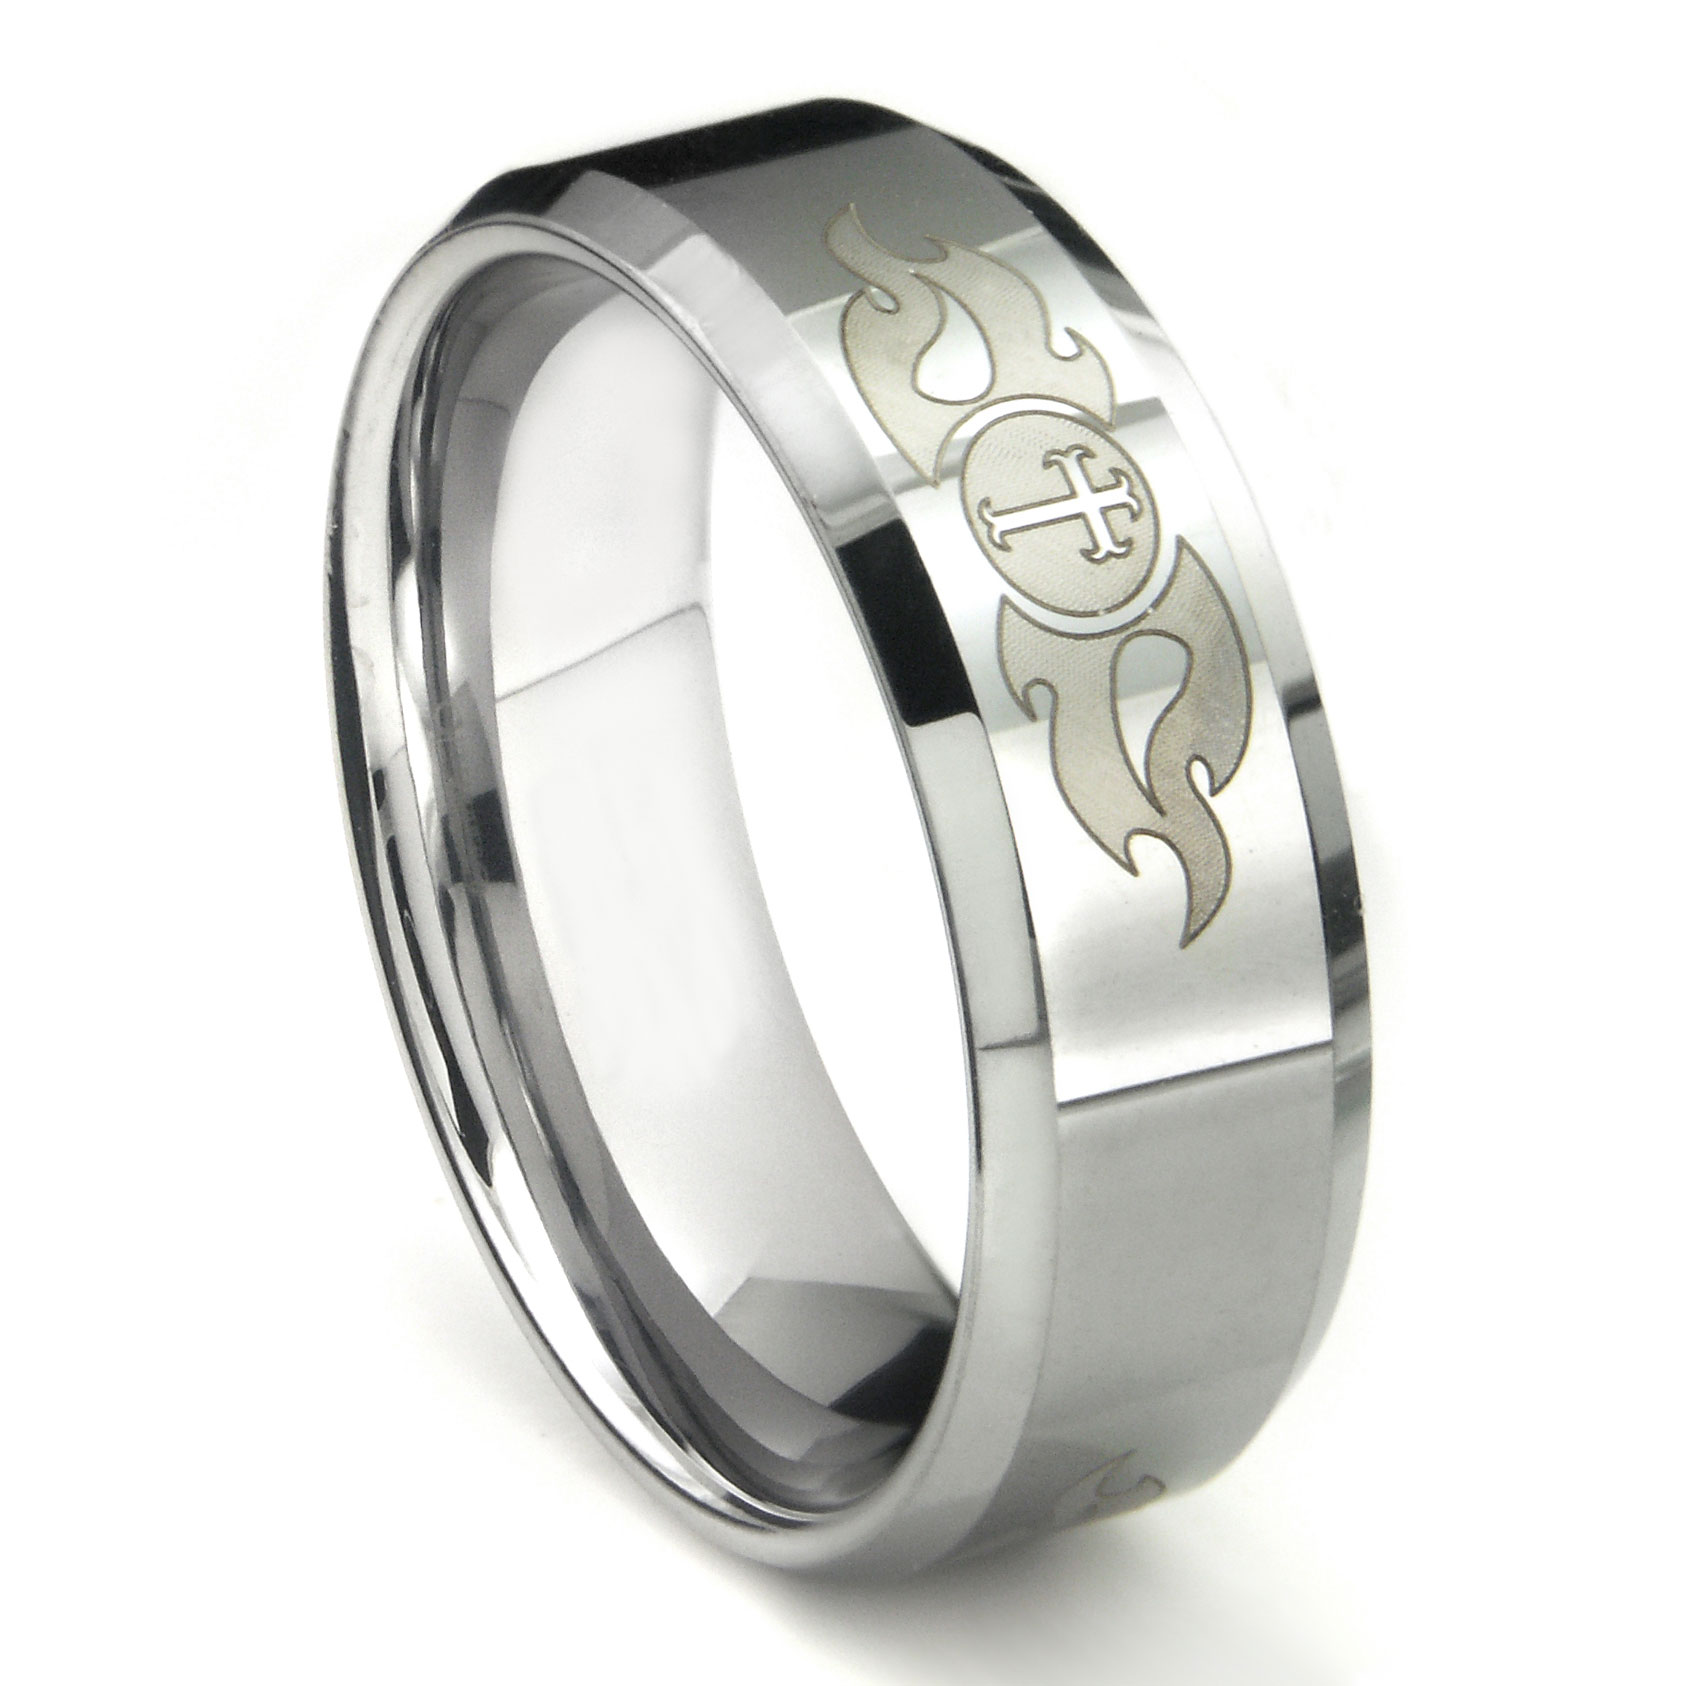 tungsten carbide laser engraved fiery cross wedding band ring